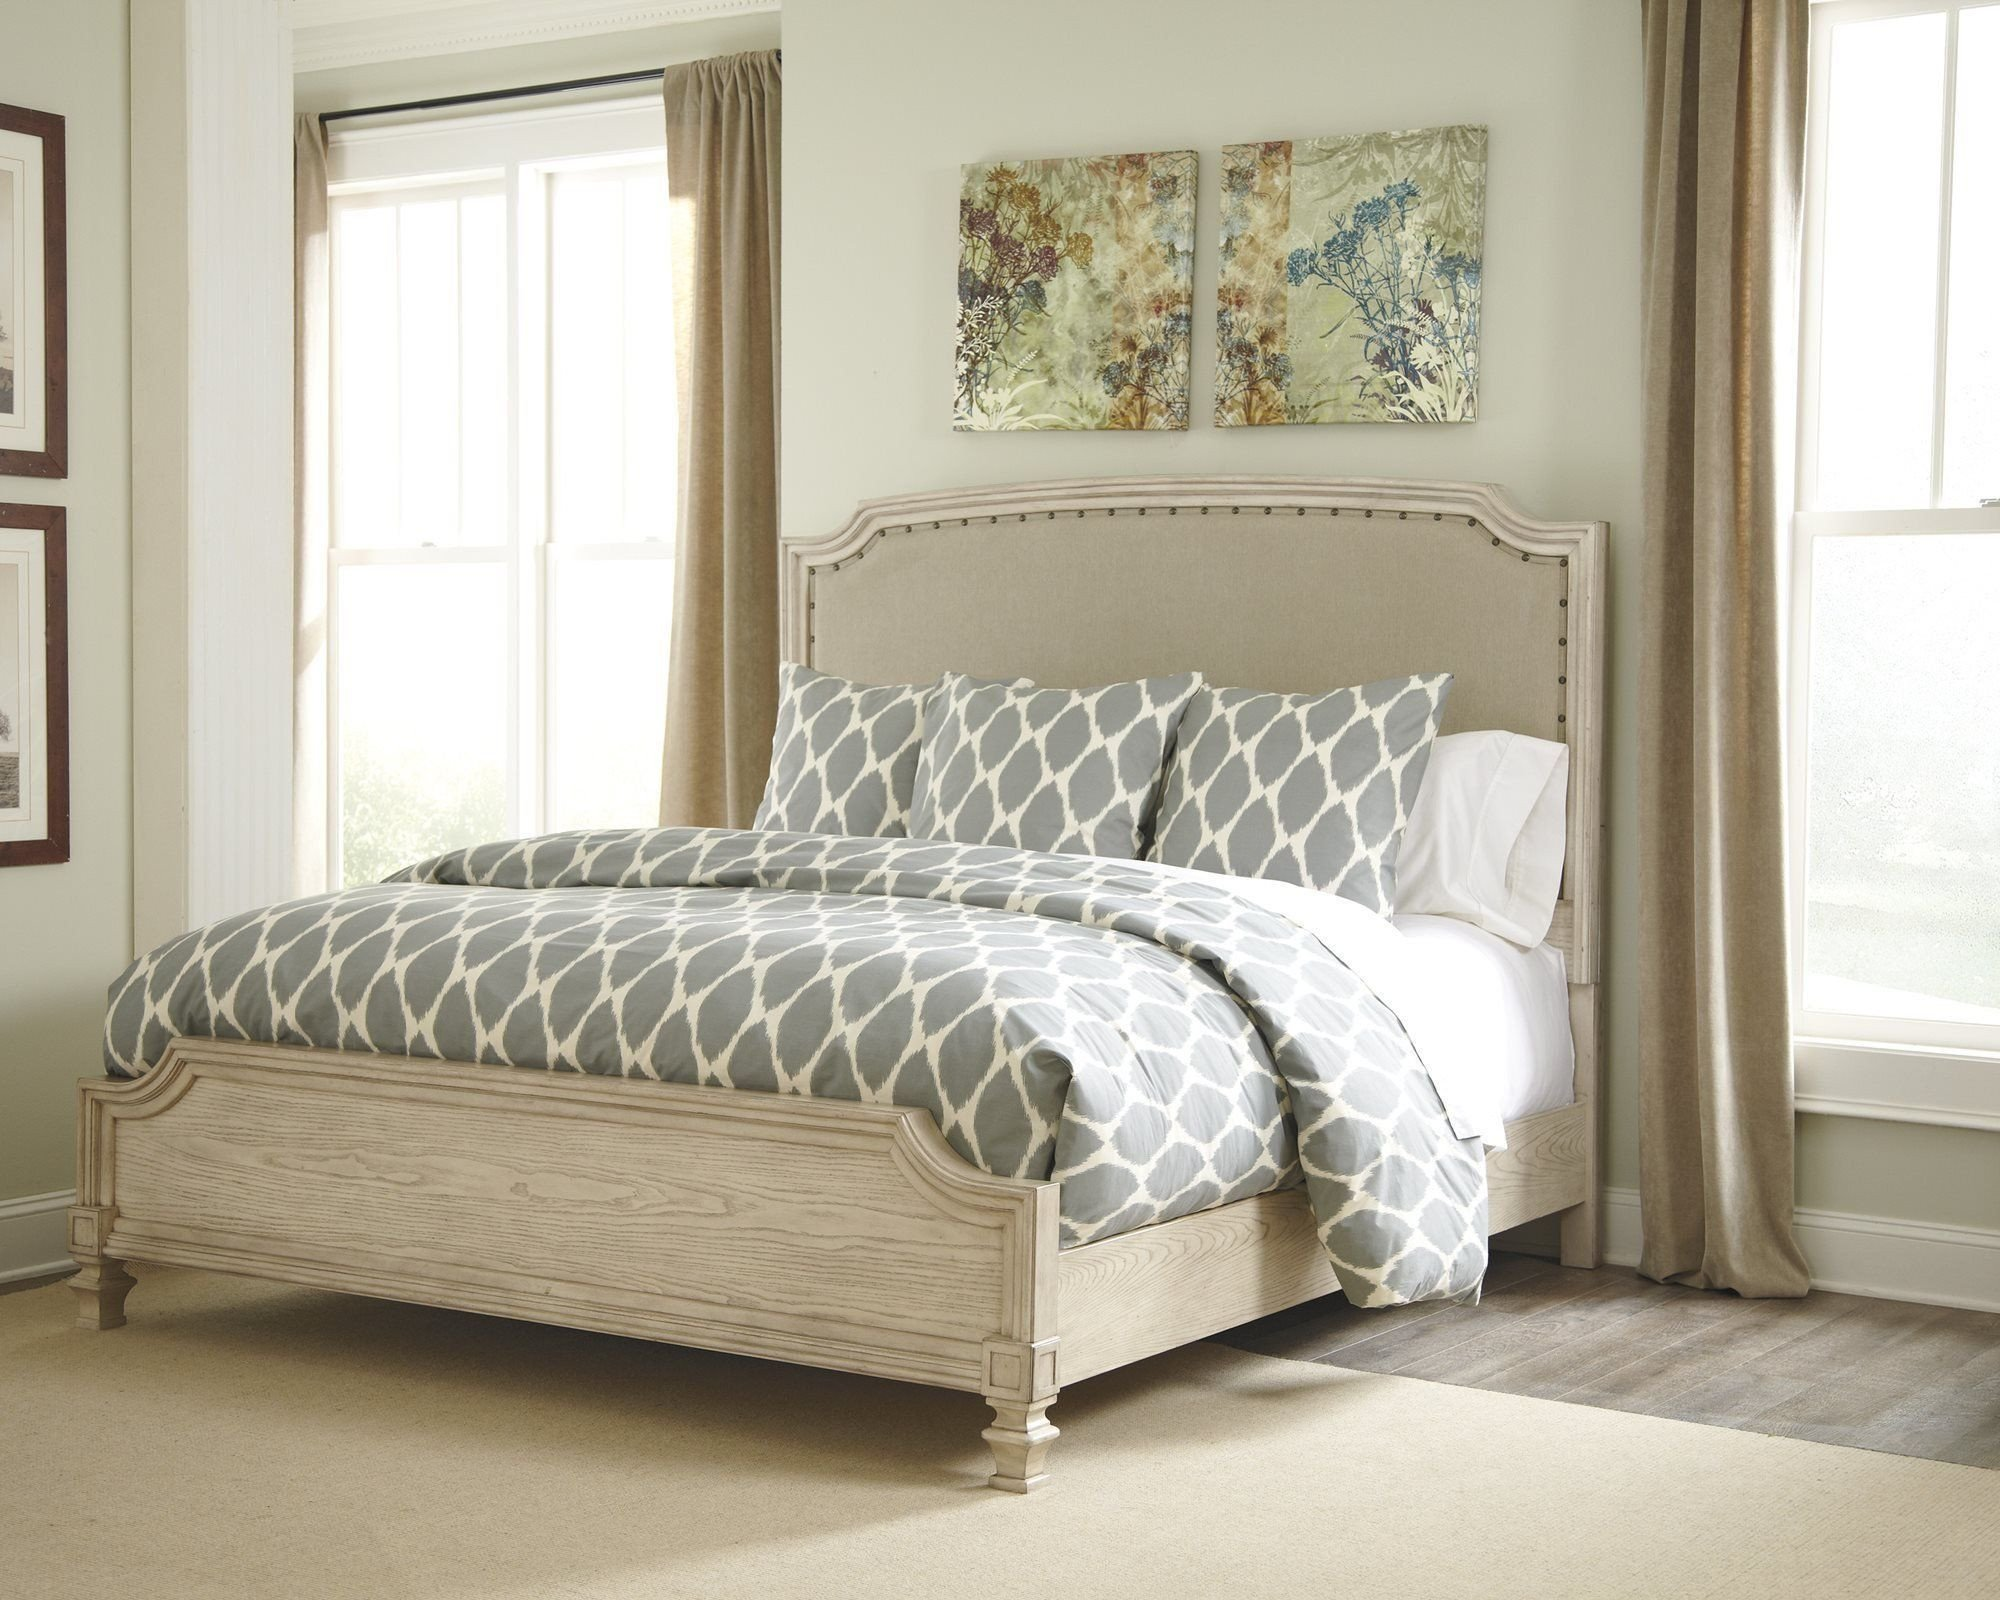 Ashley White Bedroom Furniture Beautiful ashley Demarlos Queen Upholstered Bed In Parchment White